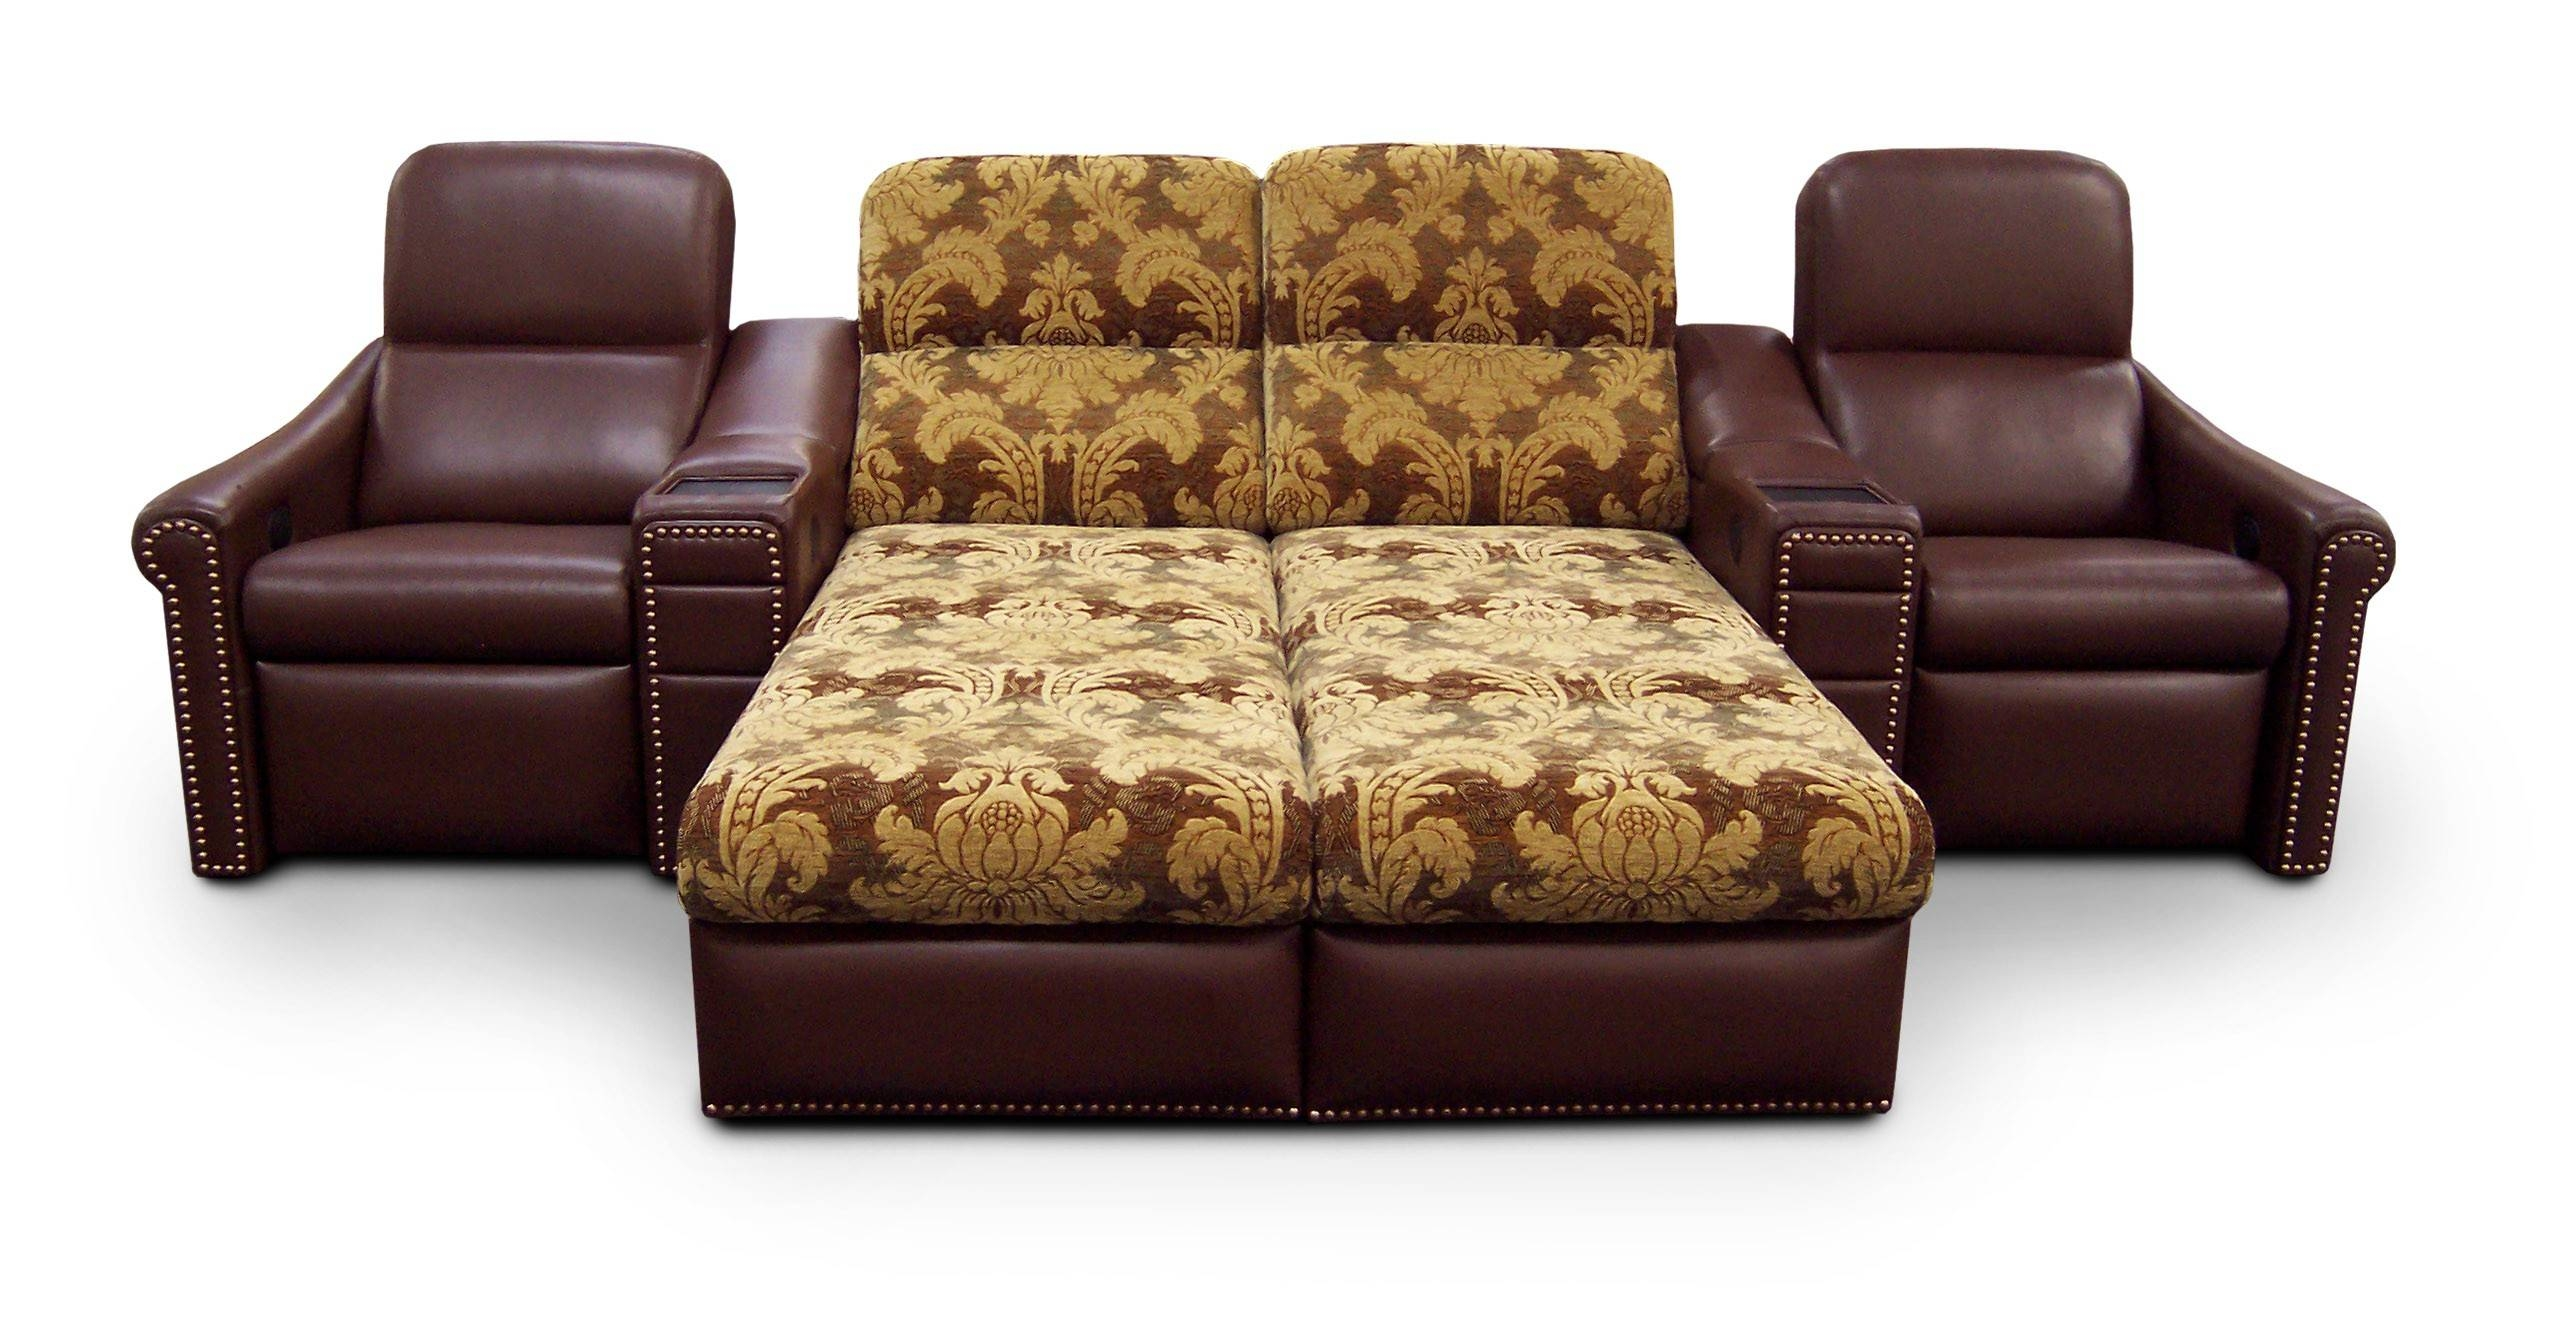 Sofas Center : Double Chaise Lounge Sectional Sofa Chair intended for Chaise Sofa Chairs (Image 15 of 15)